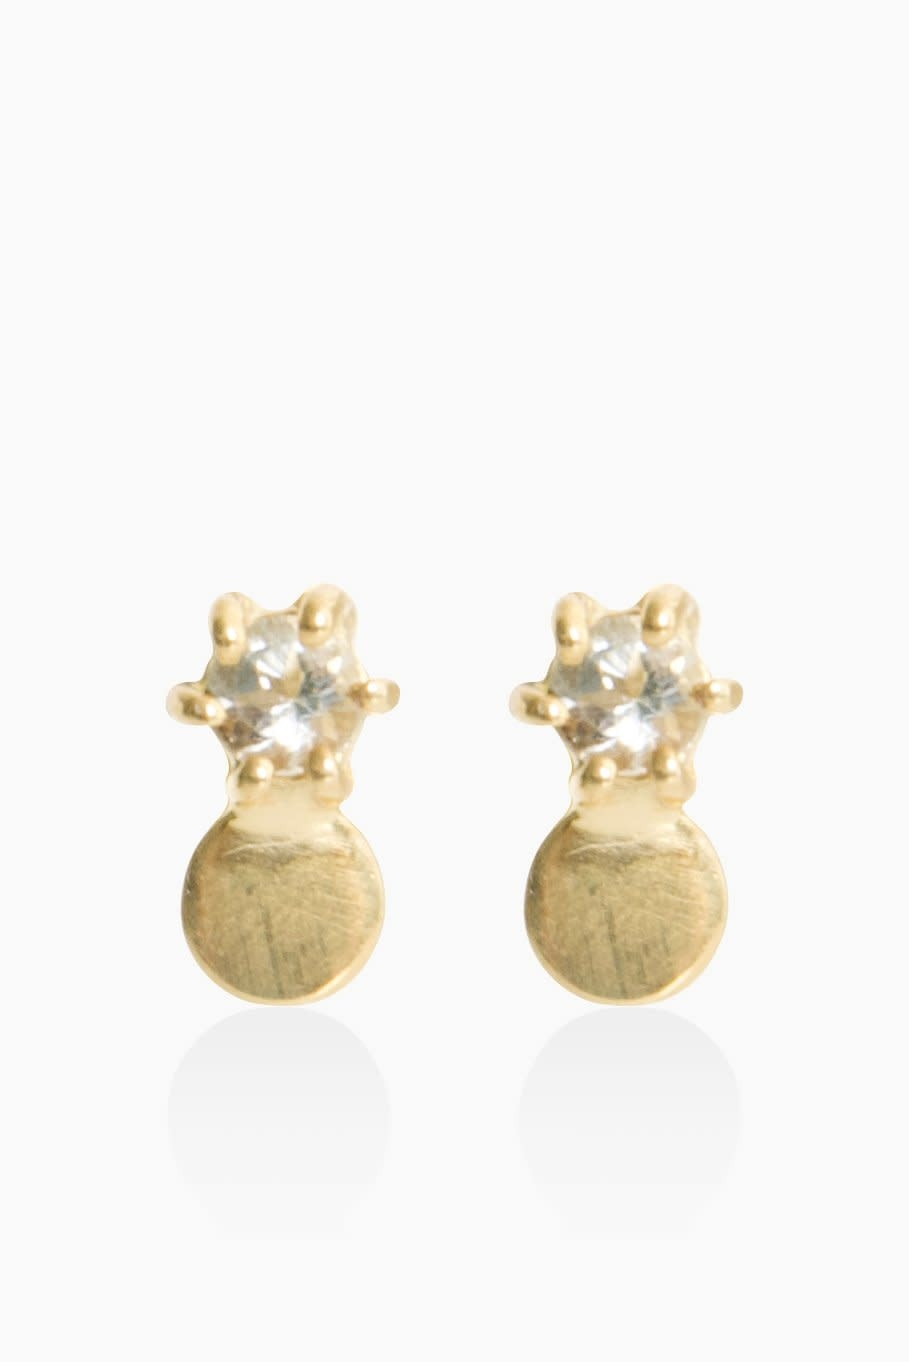 Détail Earrings Frederique green amethyst gold plated (8687)